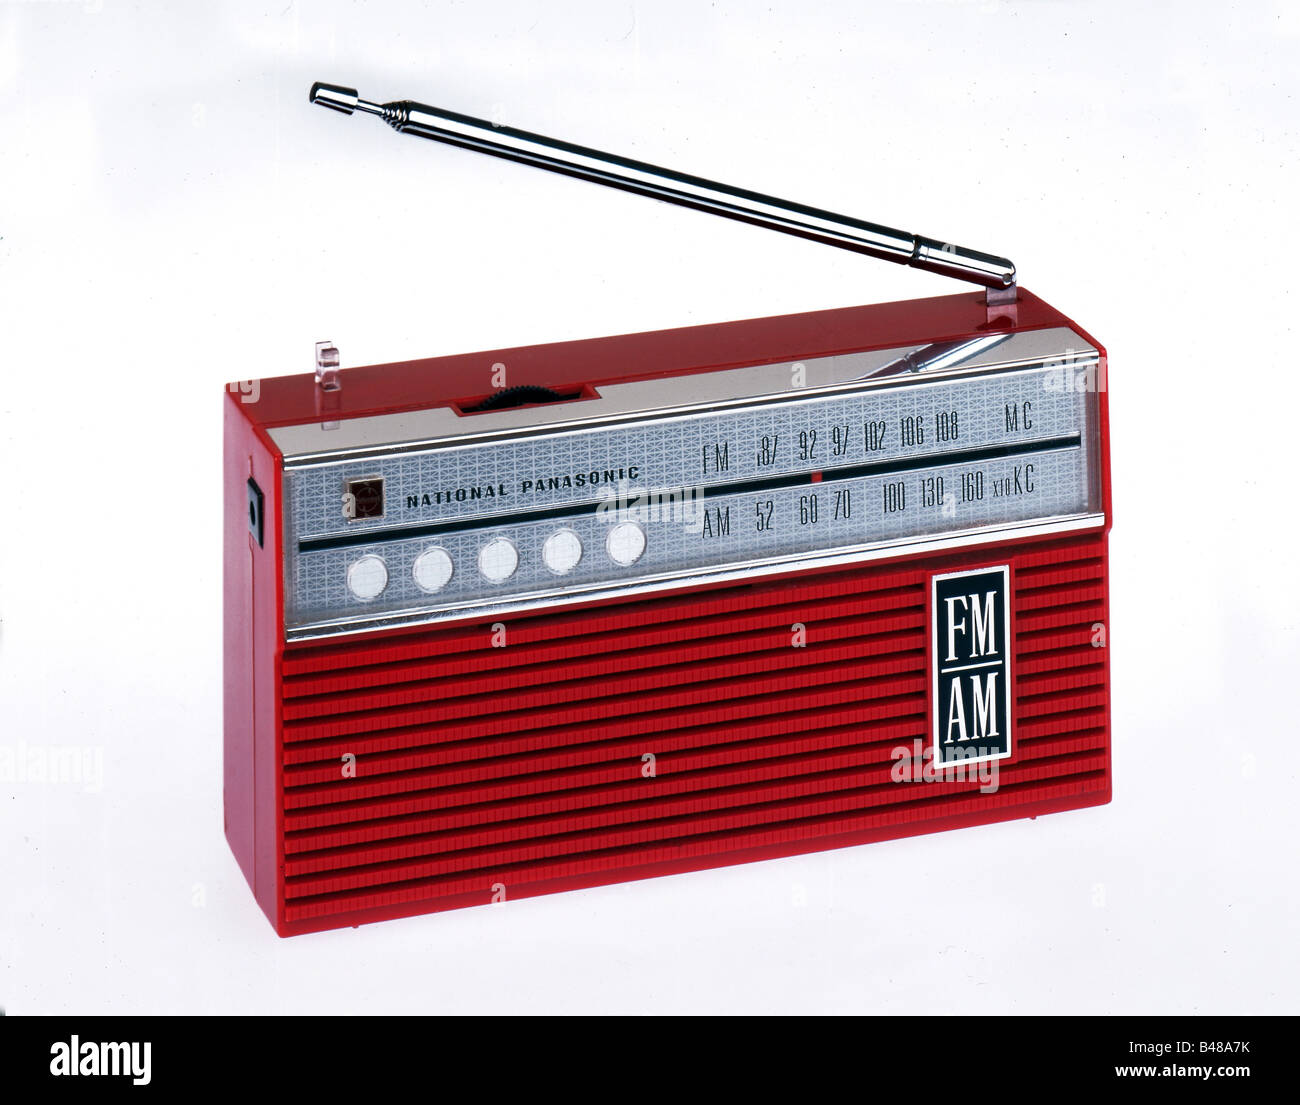 technic, radio, Japanese radio of National Panasonic, red, Japan, studio shot, circa 1968, Additional-Rights-Clearances - Stock Image